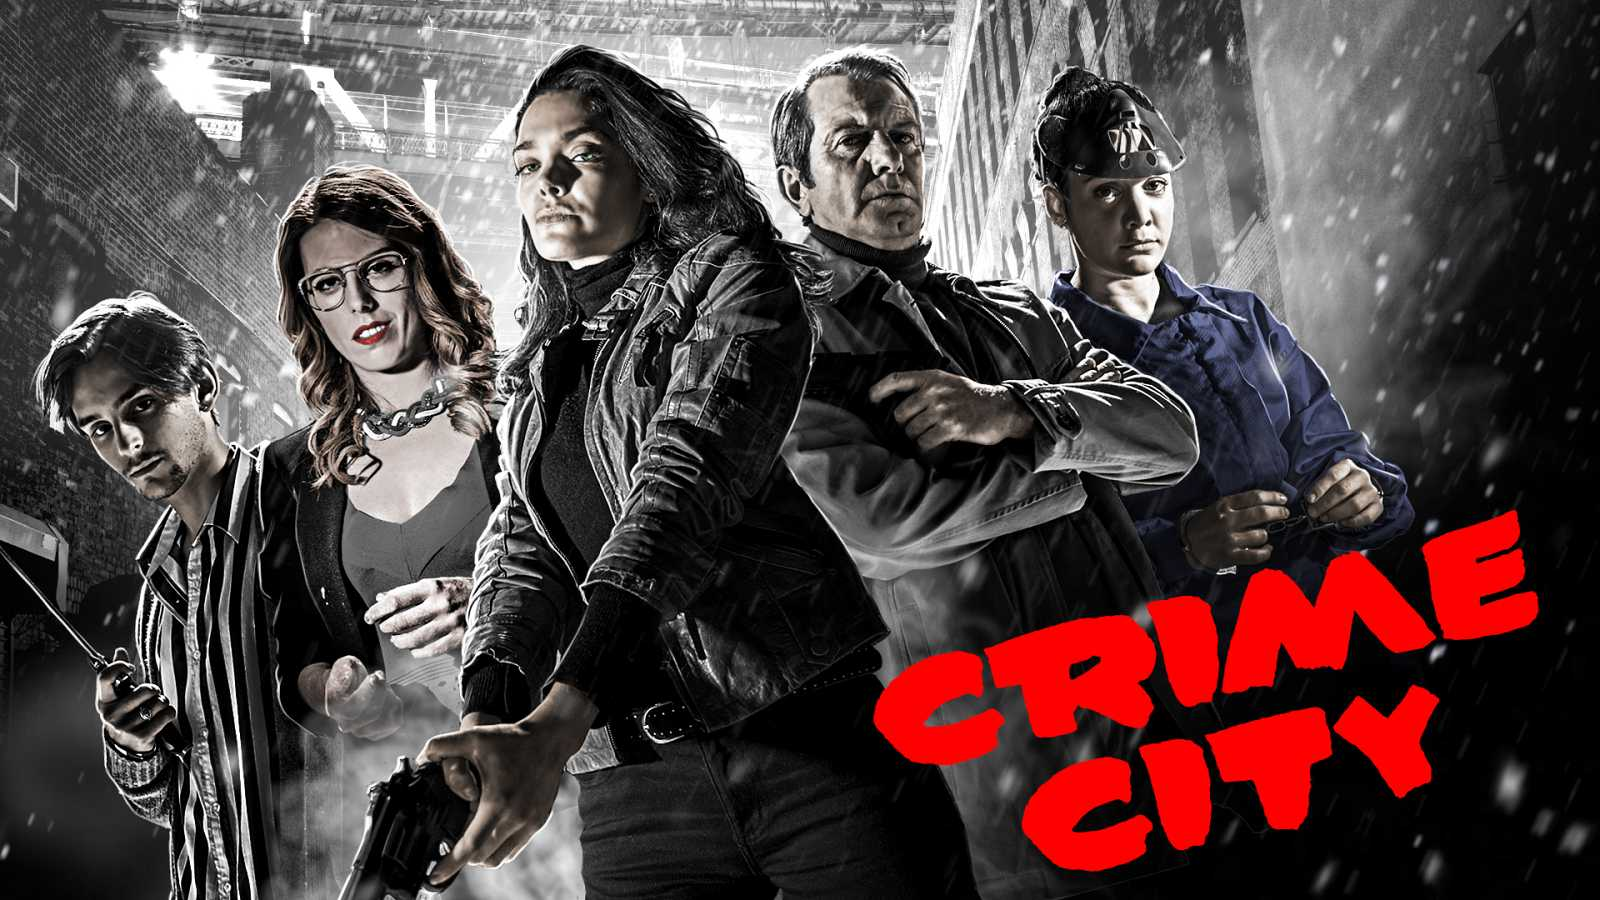 Neverfilms - Mira ya 'Crime City'